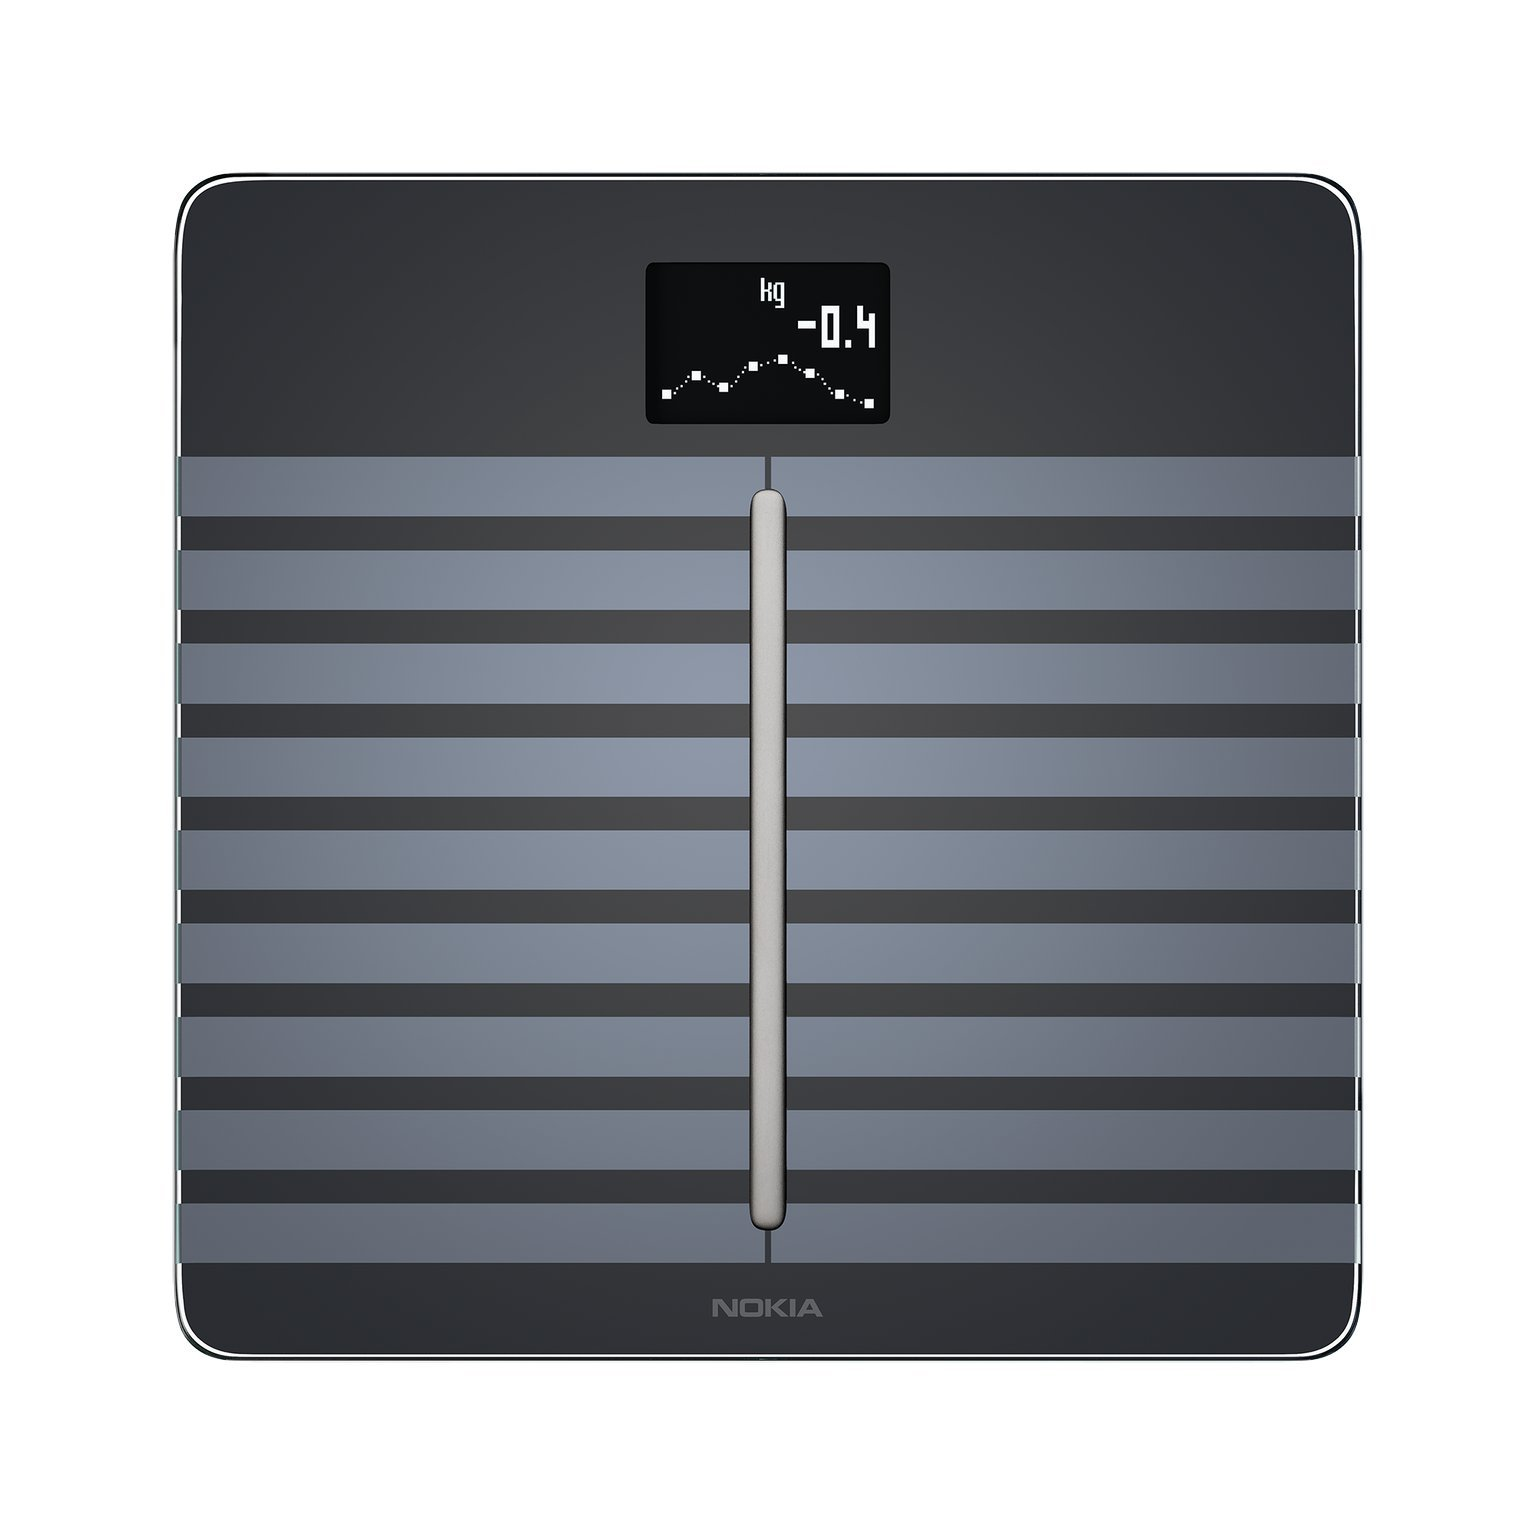 Nokia Body Cardio- Wi-Fi Smart Scale with Body Composition & Heart Rate, Black